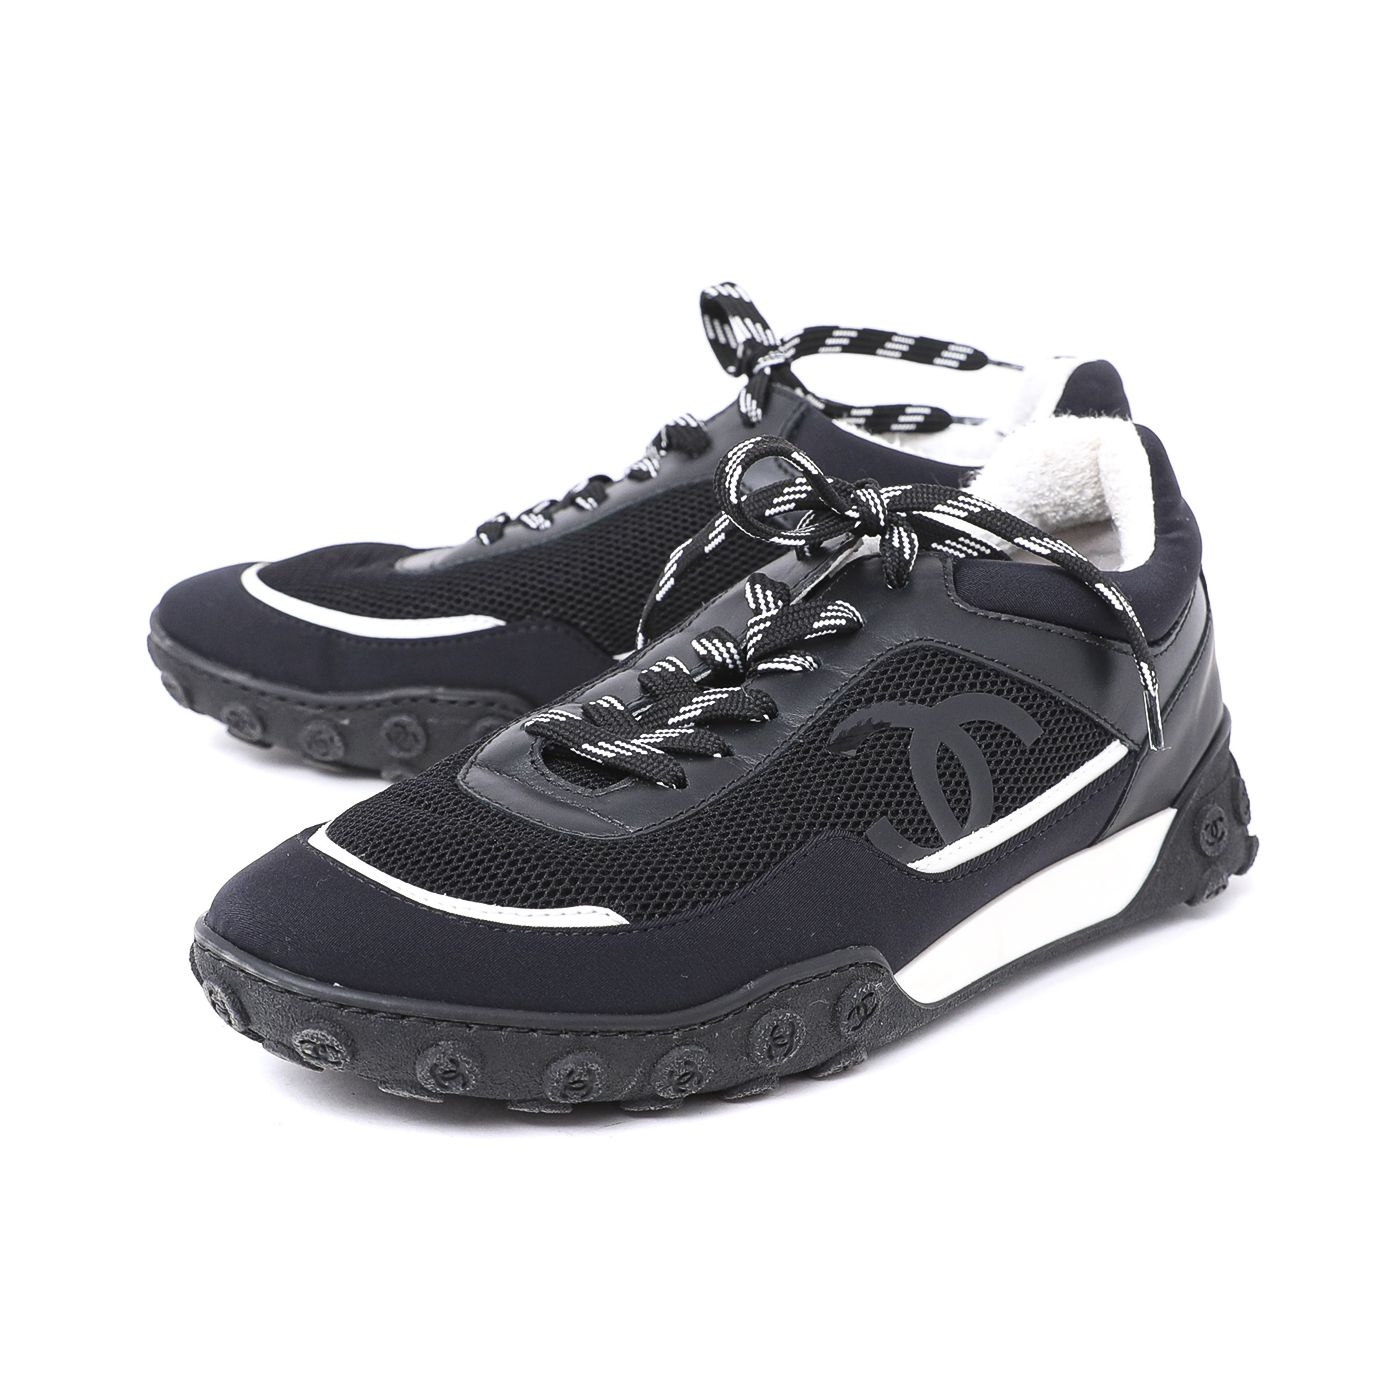 Chanel Bicolor Trainers Sneakers 39